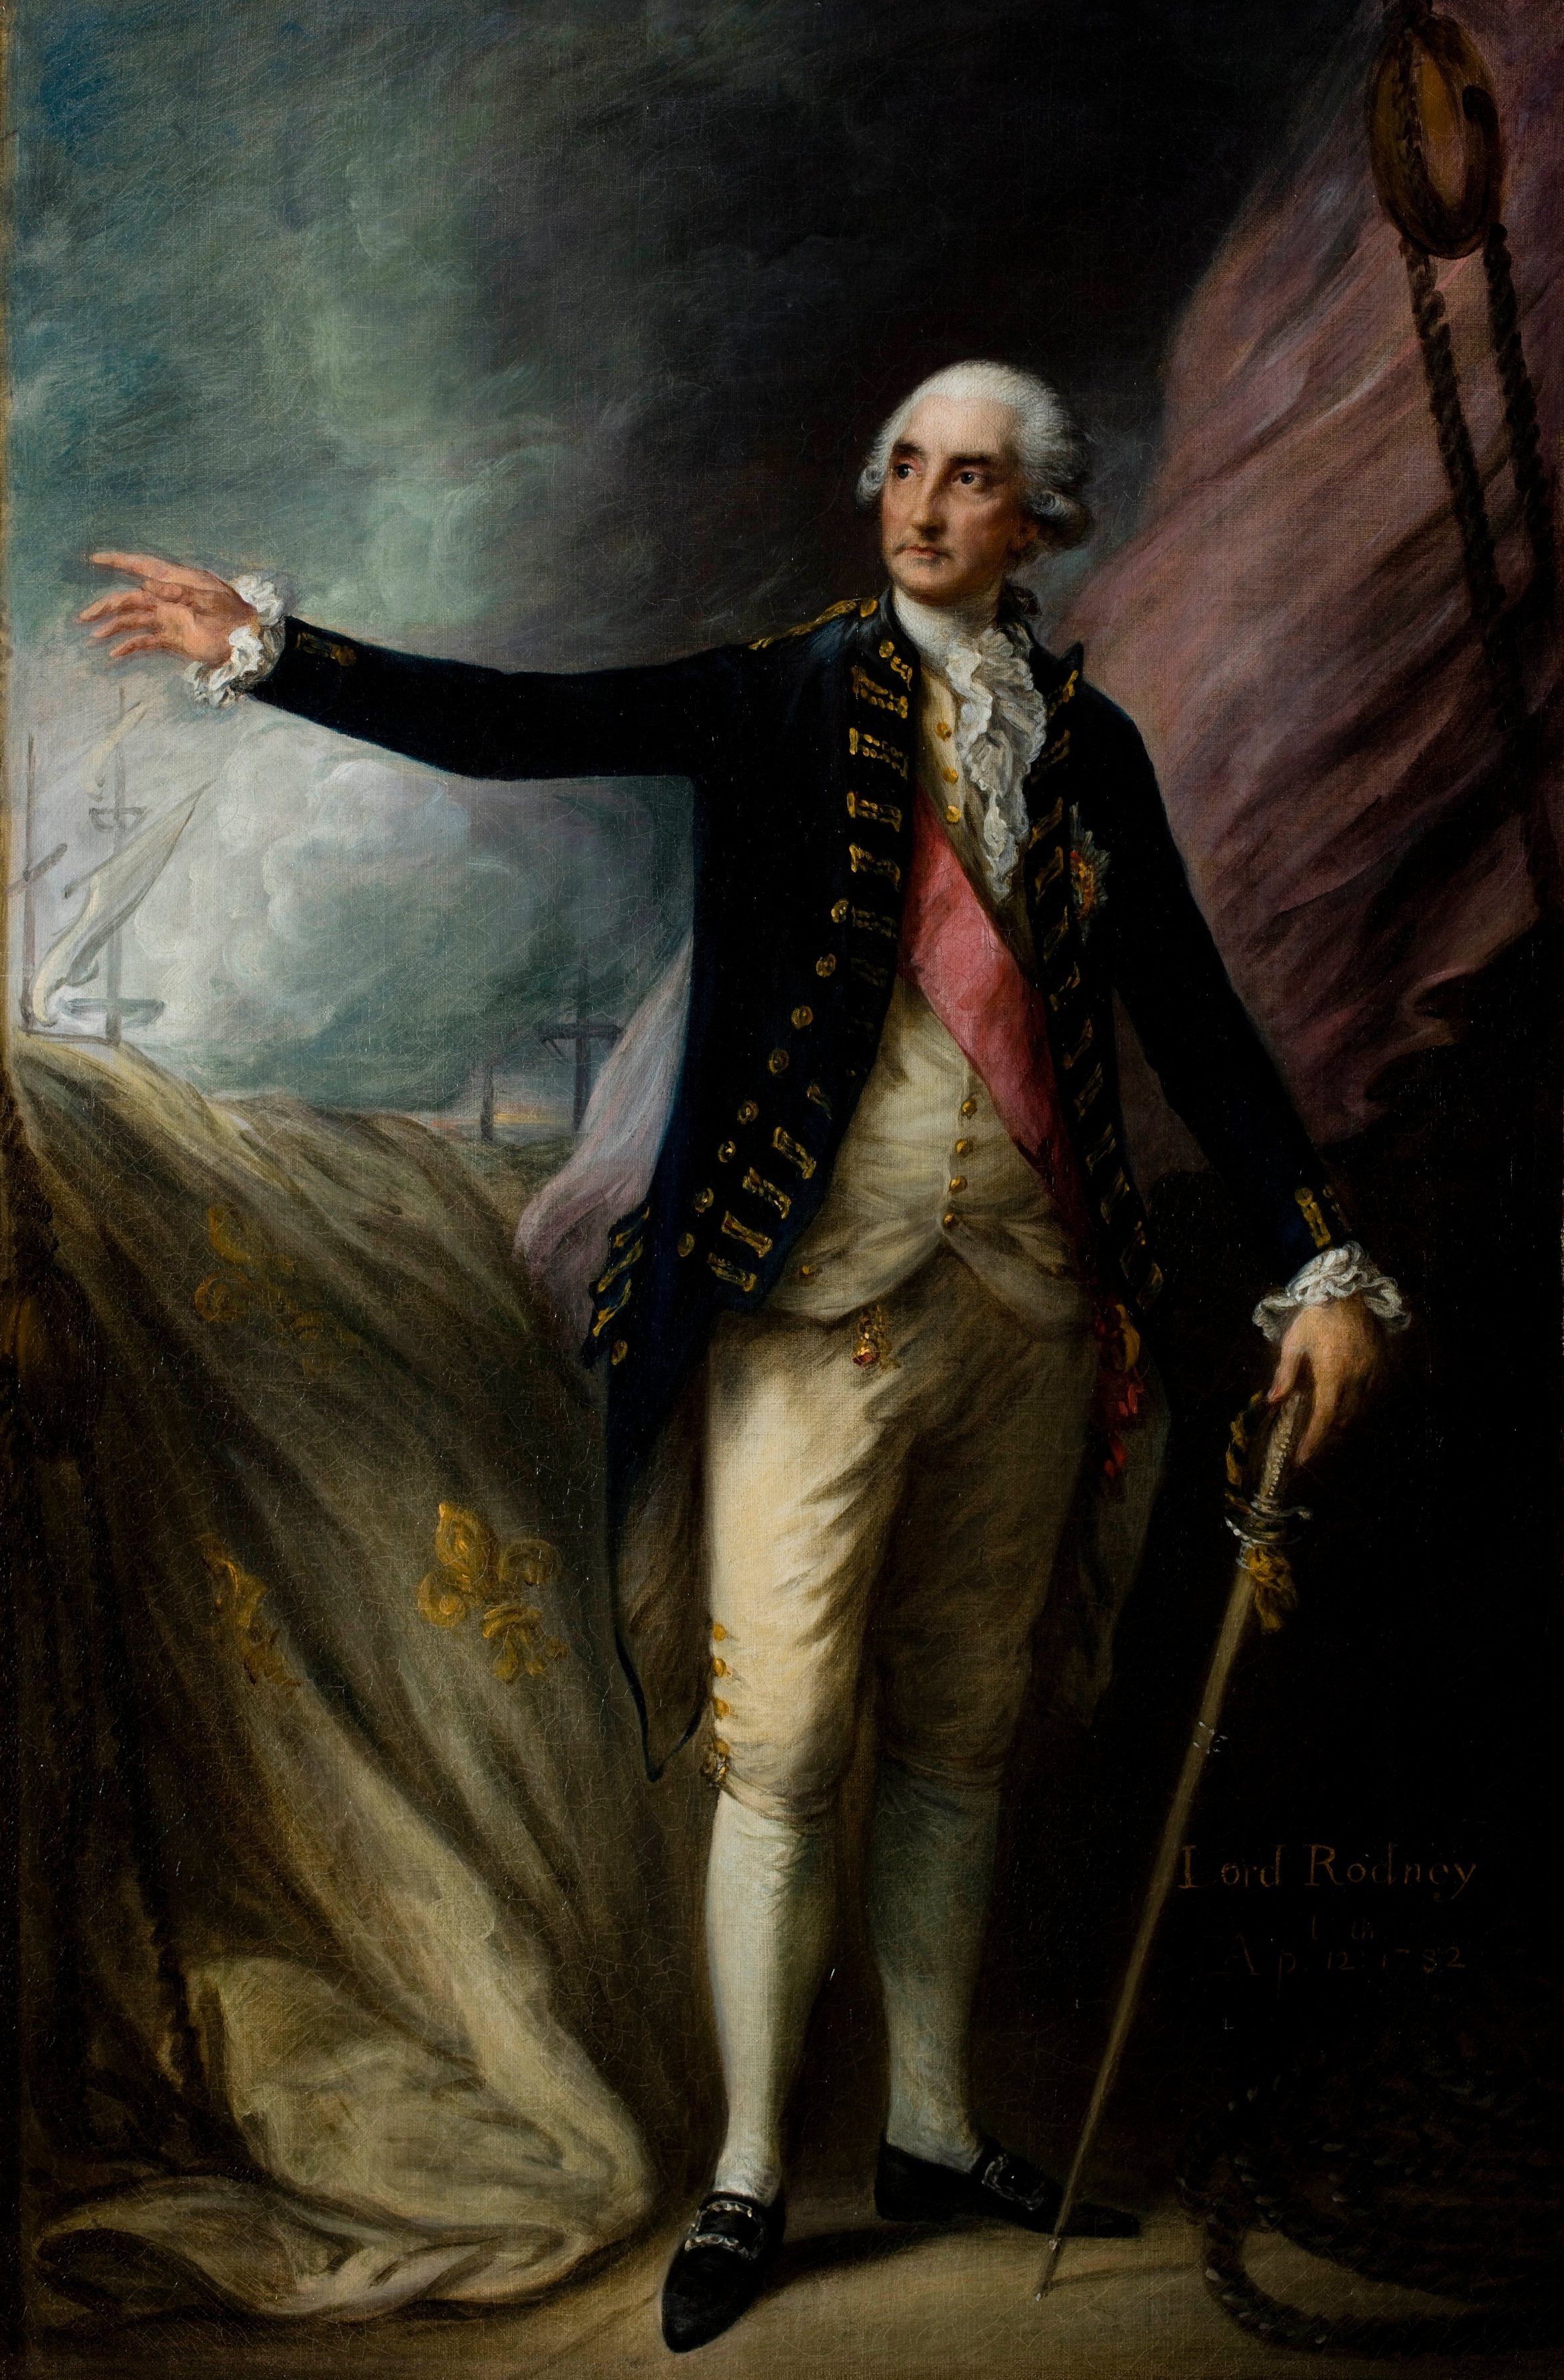 Thomas Gainsborough,  Portrait of George Brydges Rodney, 1st Lord Rodney , 1782. Oil on canvas.